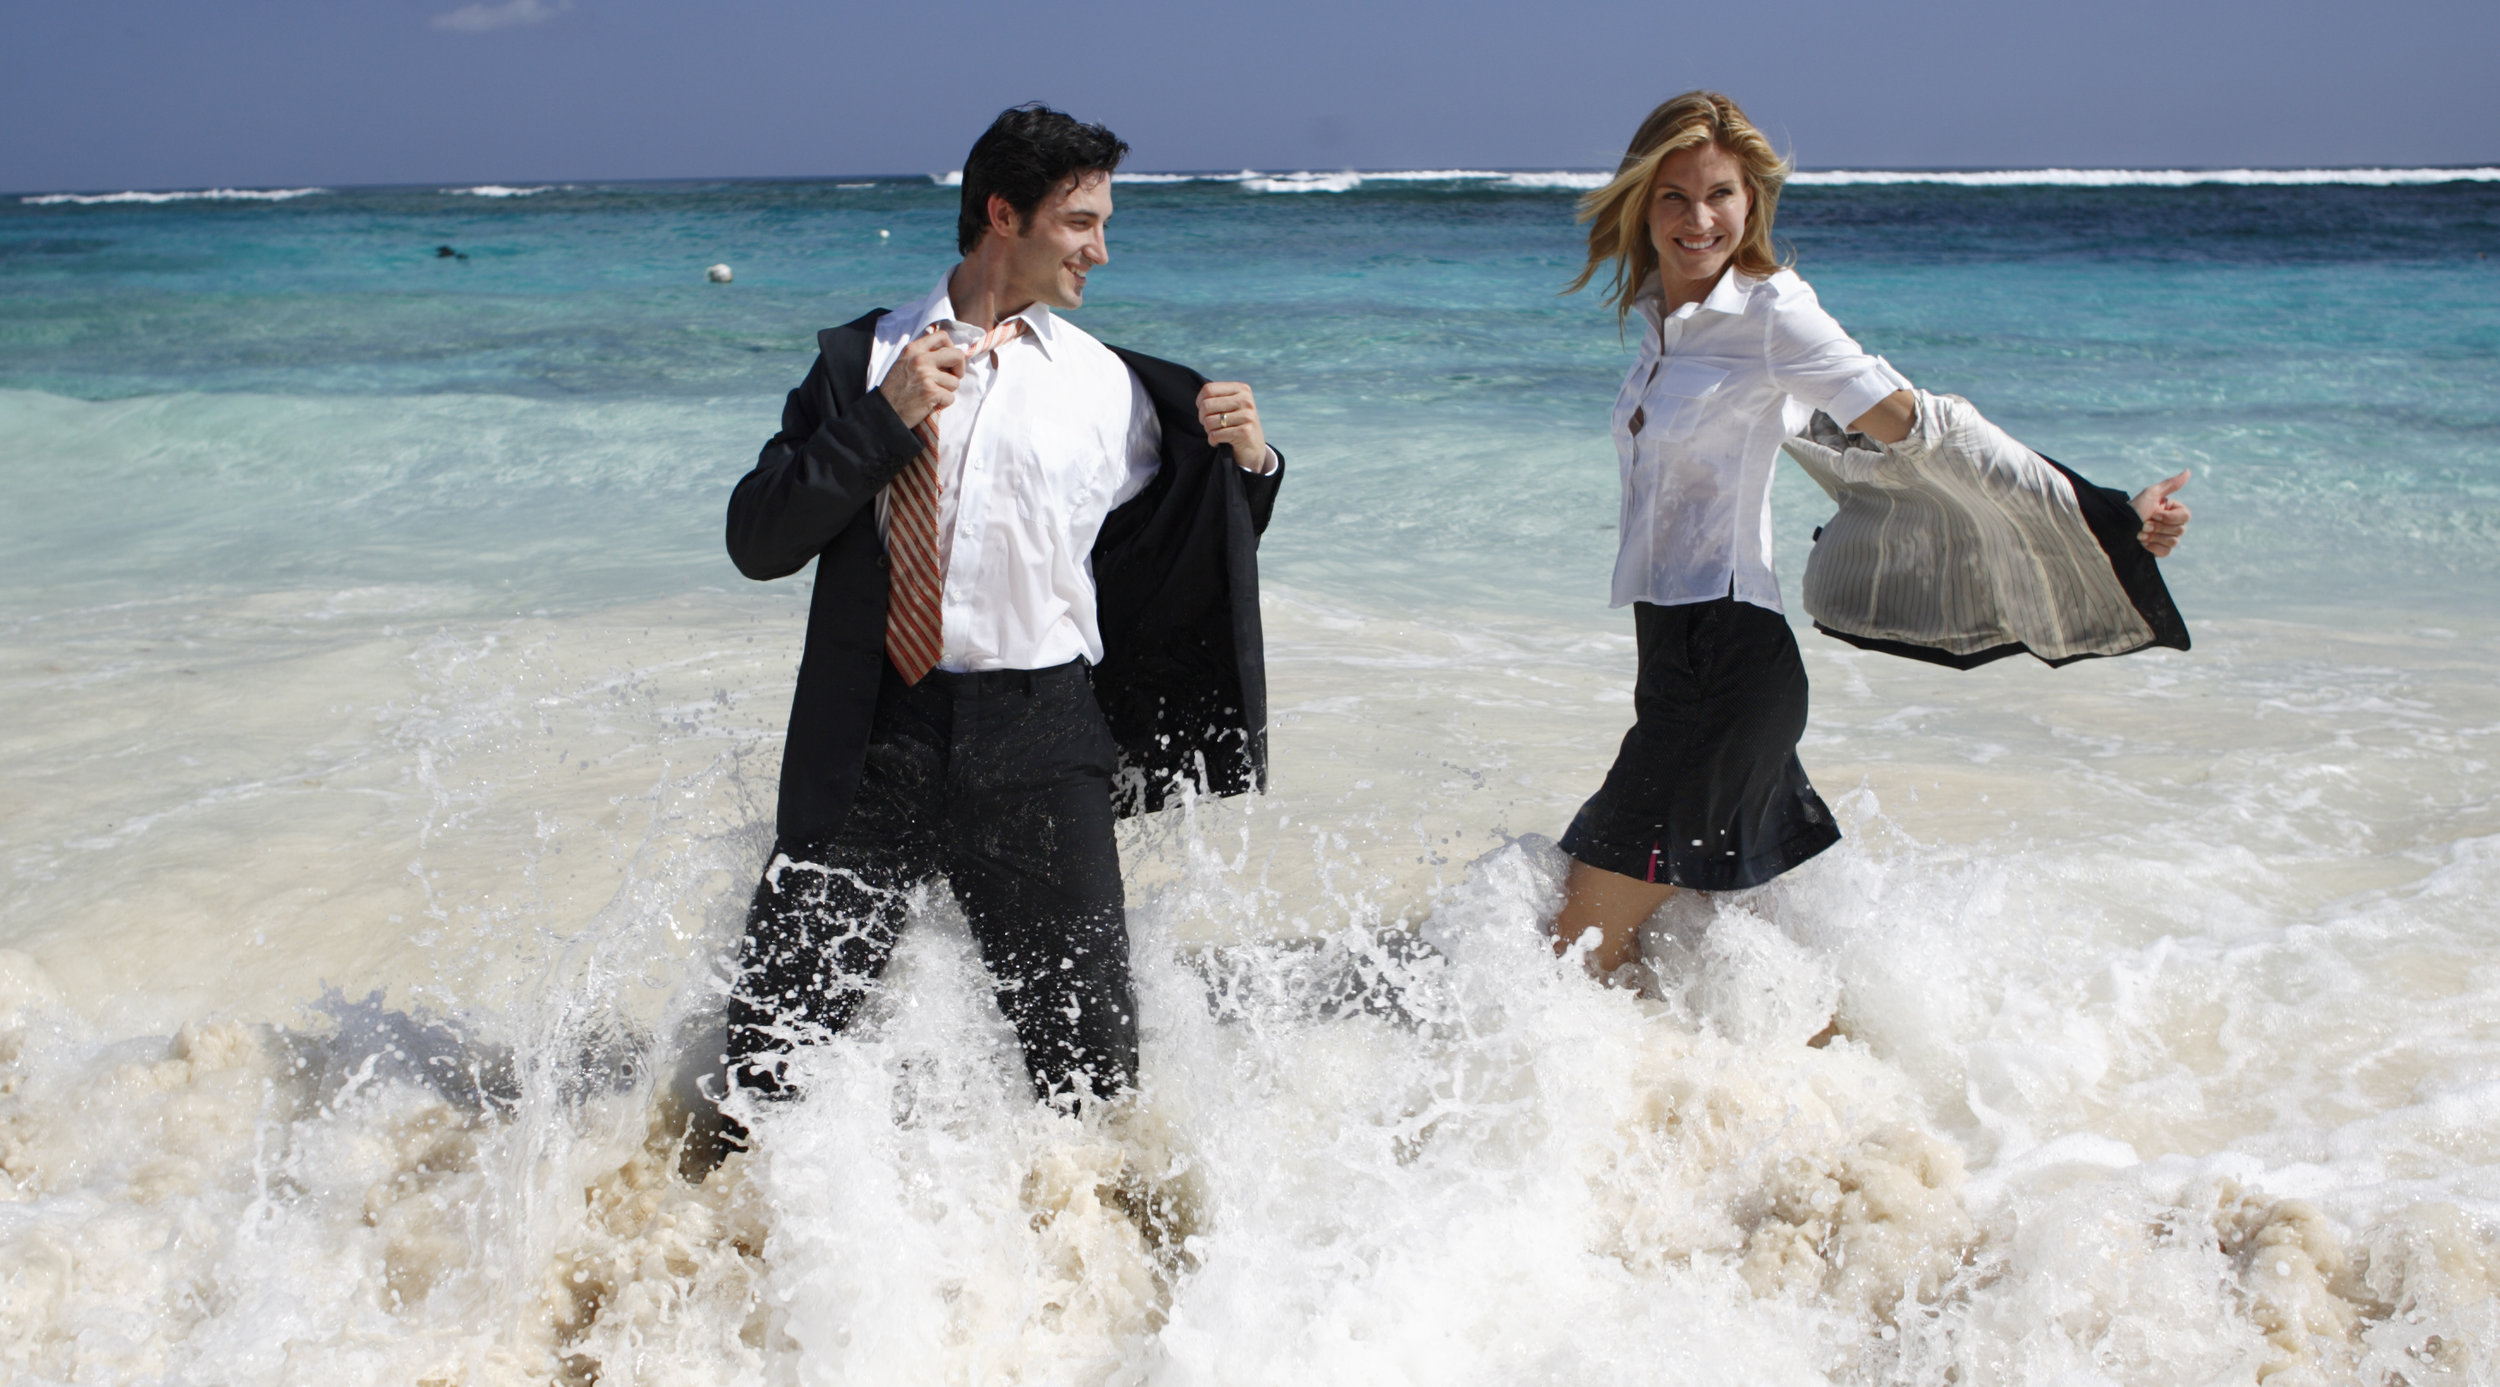 The guy rolled around in the surf so much that his pockets filled with sand and the trousers split wide open. I just kept shooting, with the stylist behind me moaning and freaking out.